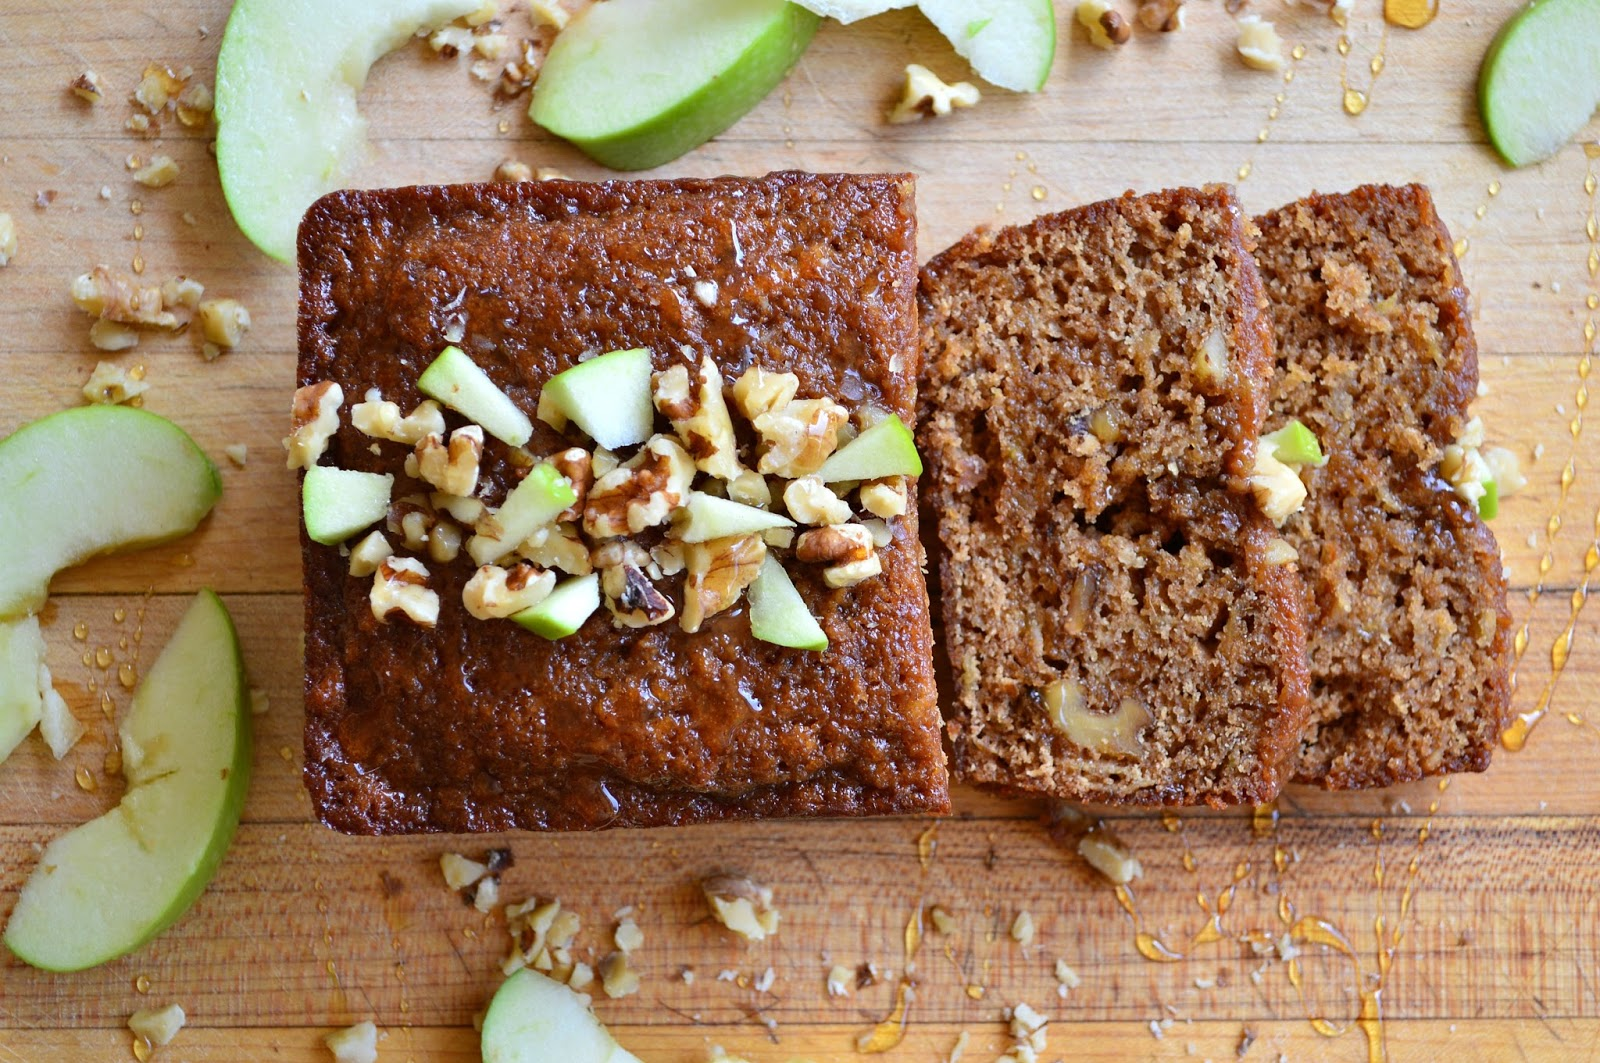 Honey Cake with Apples and Toasted Walnuts